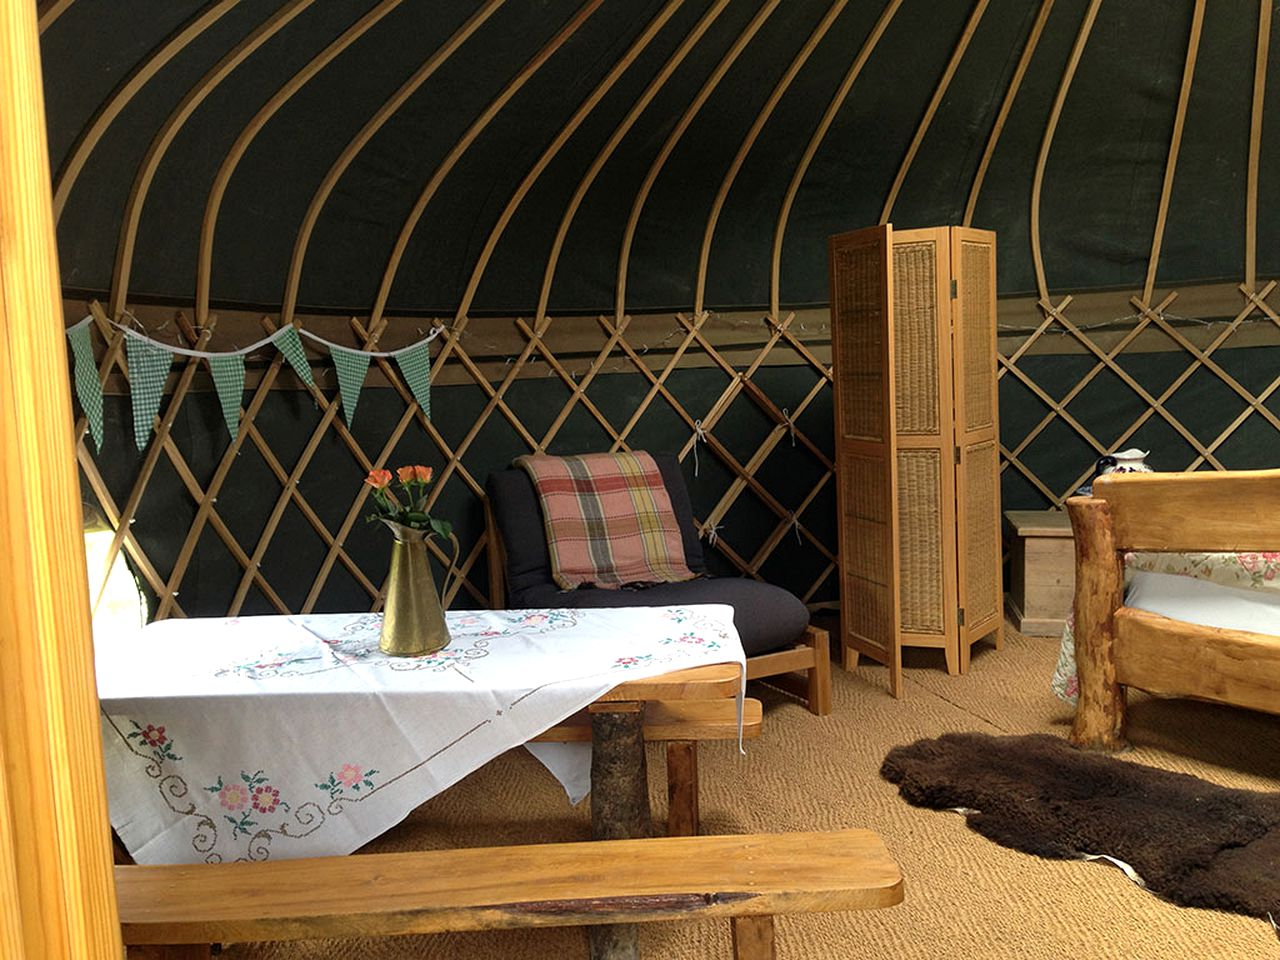 Inside of a yurt camping rental in the countryside of Surrey, England.